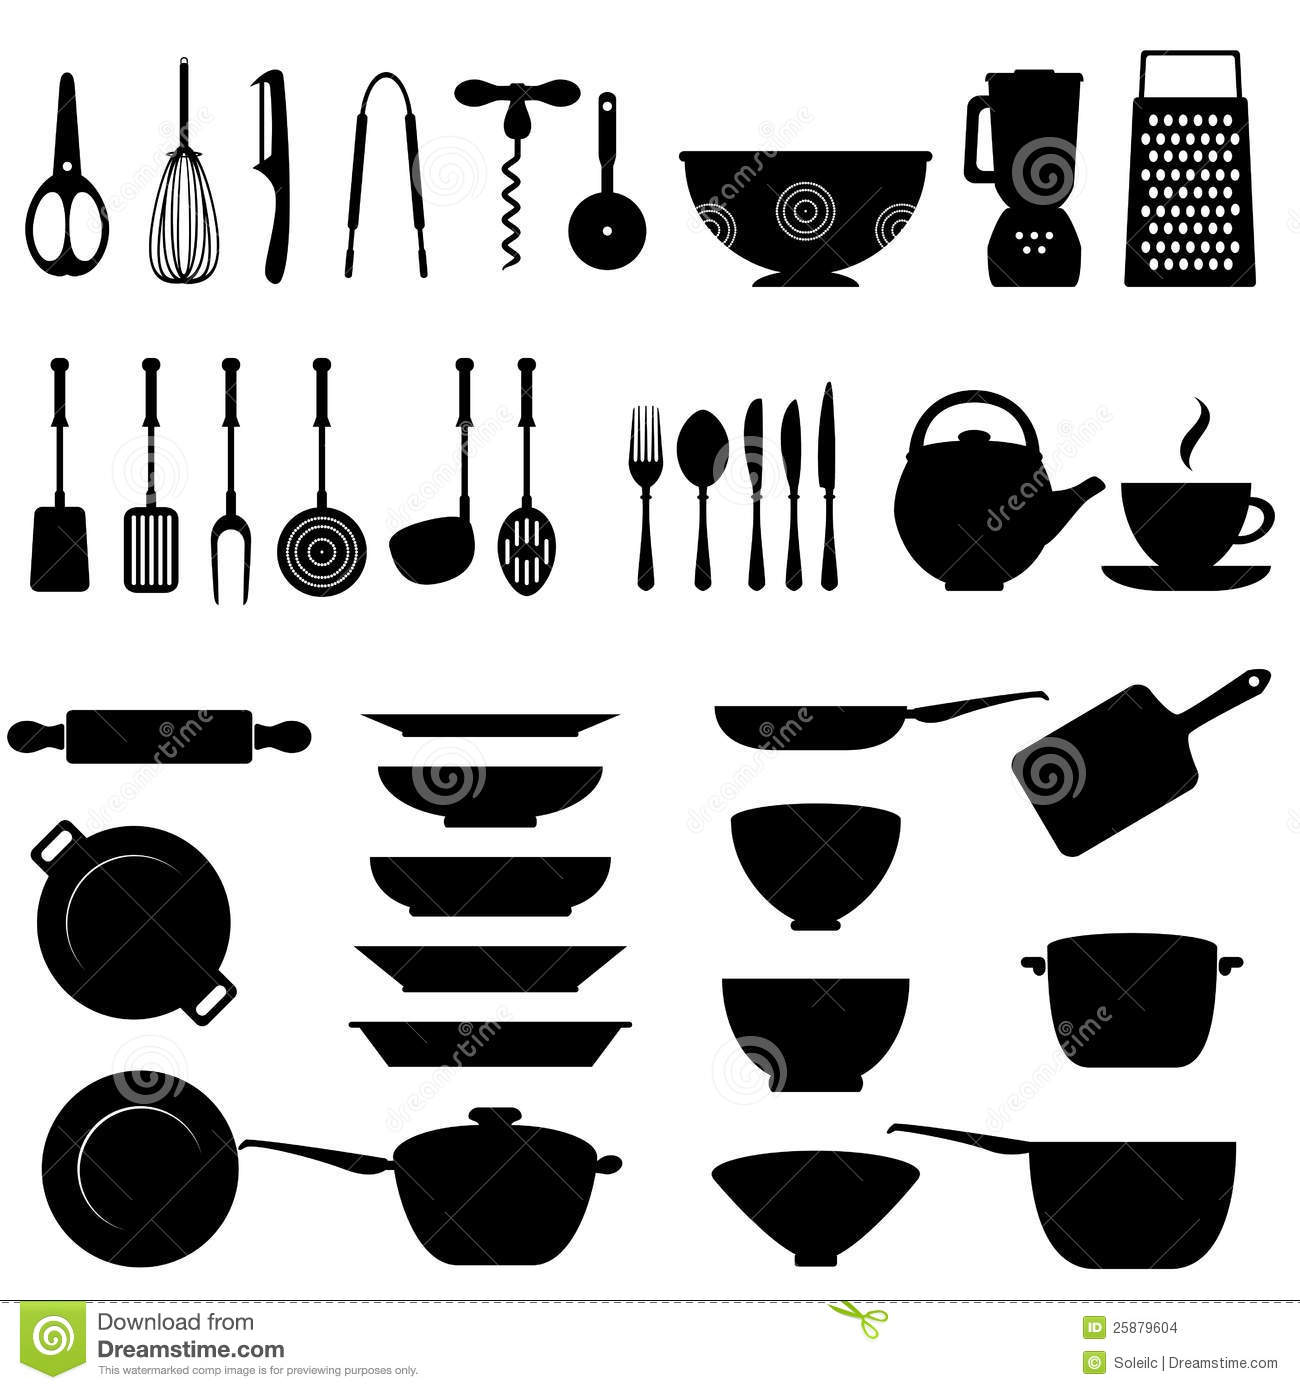 kitchen utensil icon set stock vector illustration of grater 25879604. Black Bedroom Furniture Sets. Home Design Ideas